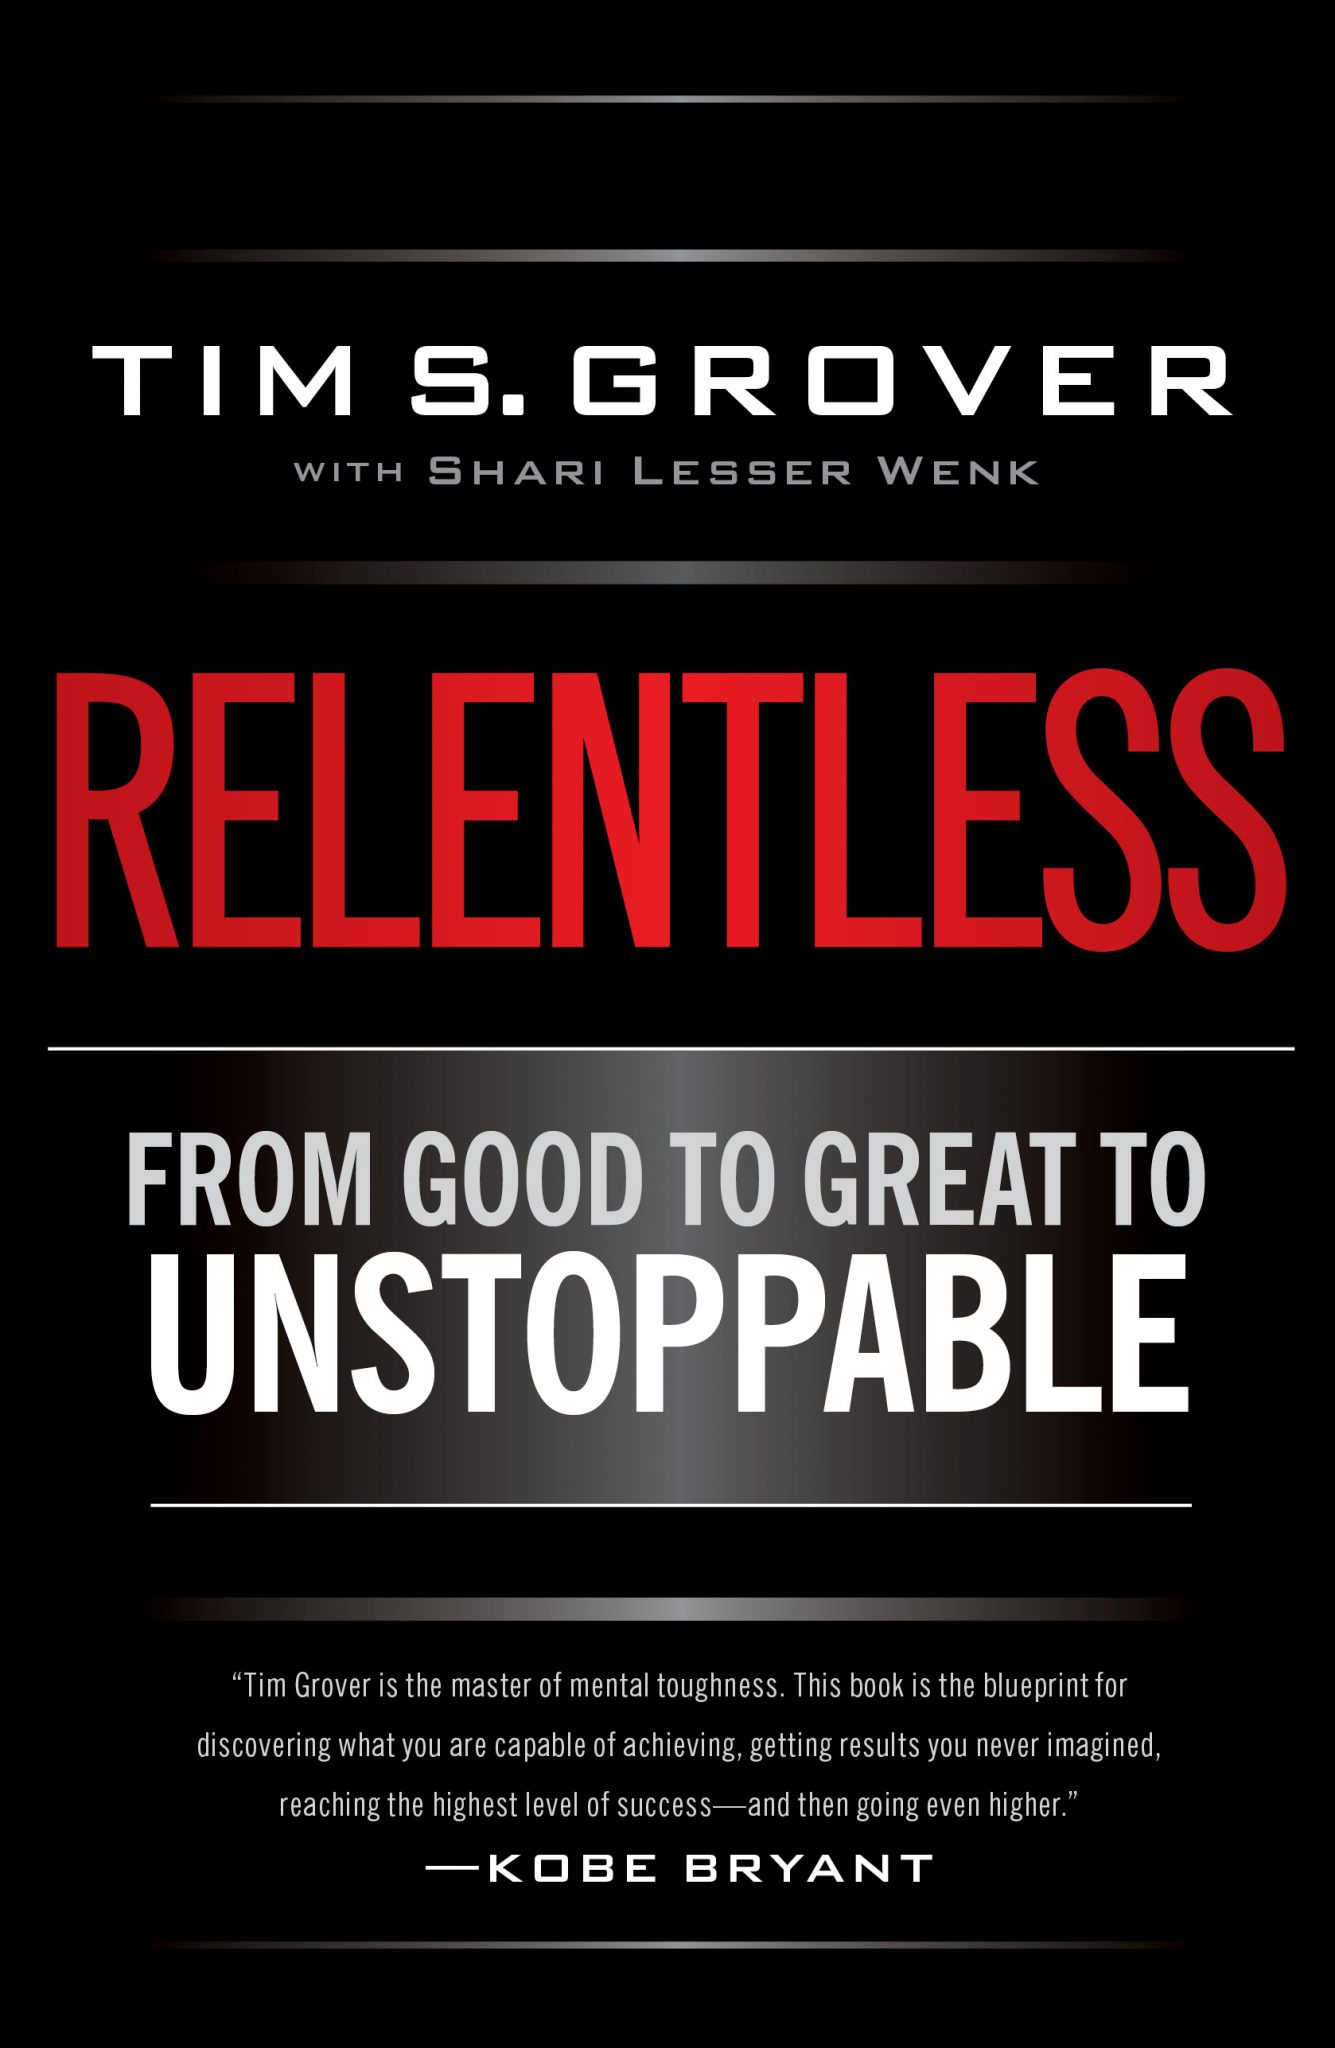 """RELENTLESS"", by TIM S. GROVER Book Summary"